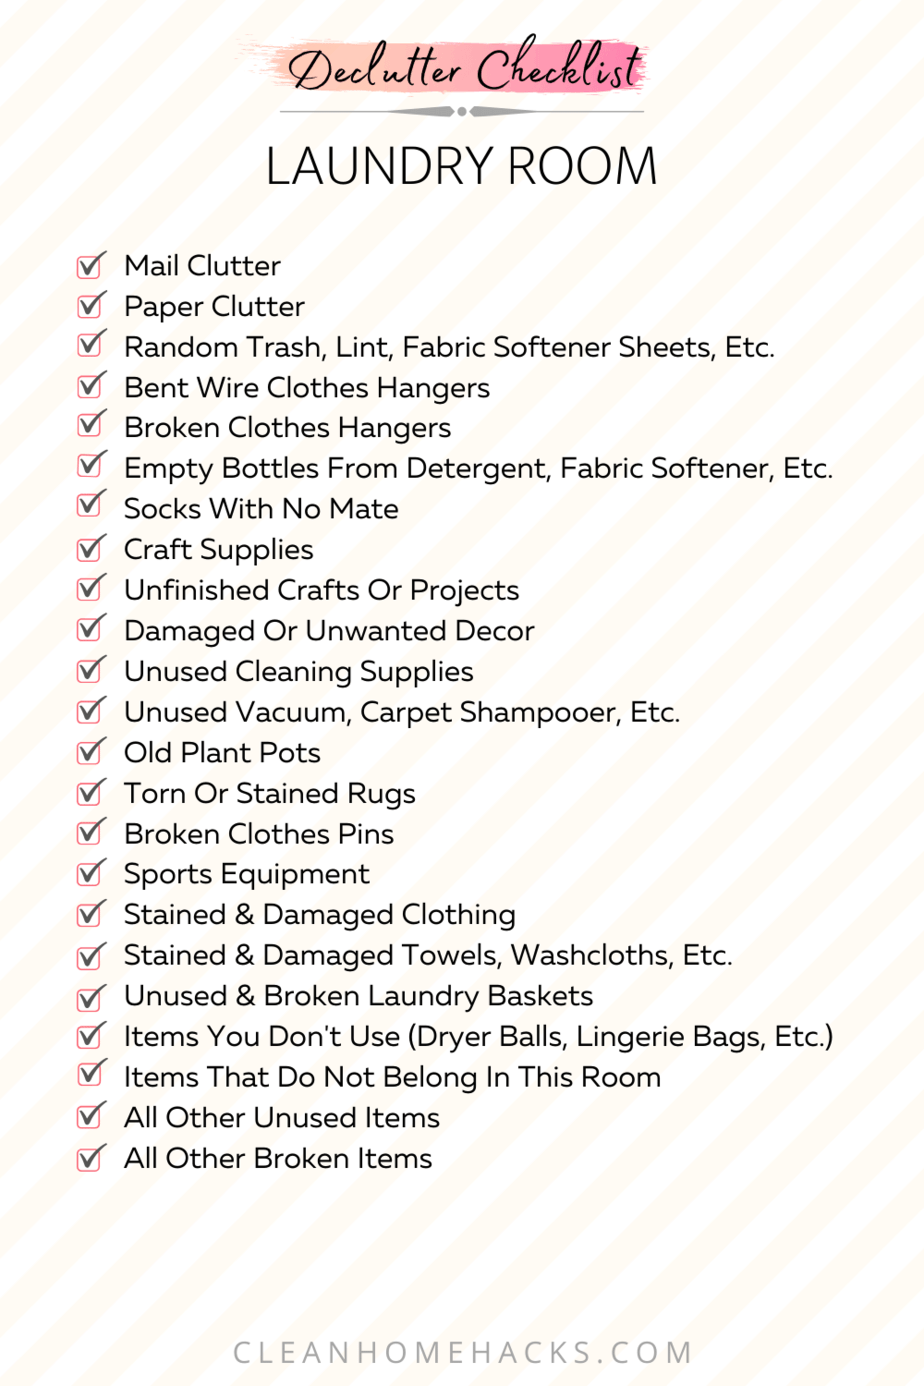 itemized list to declutter the laundry room